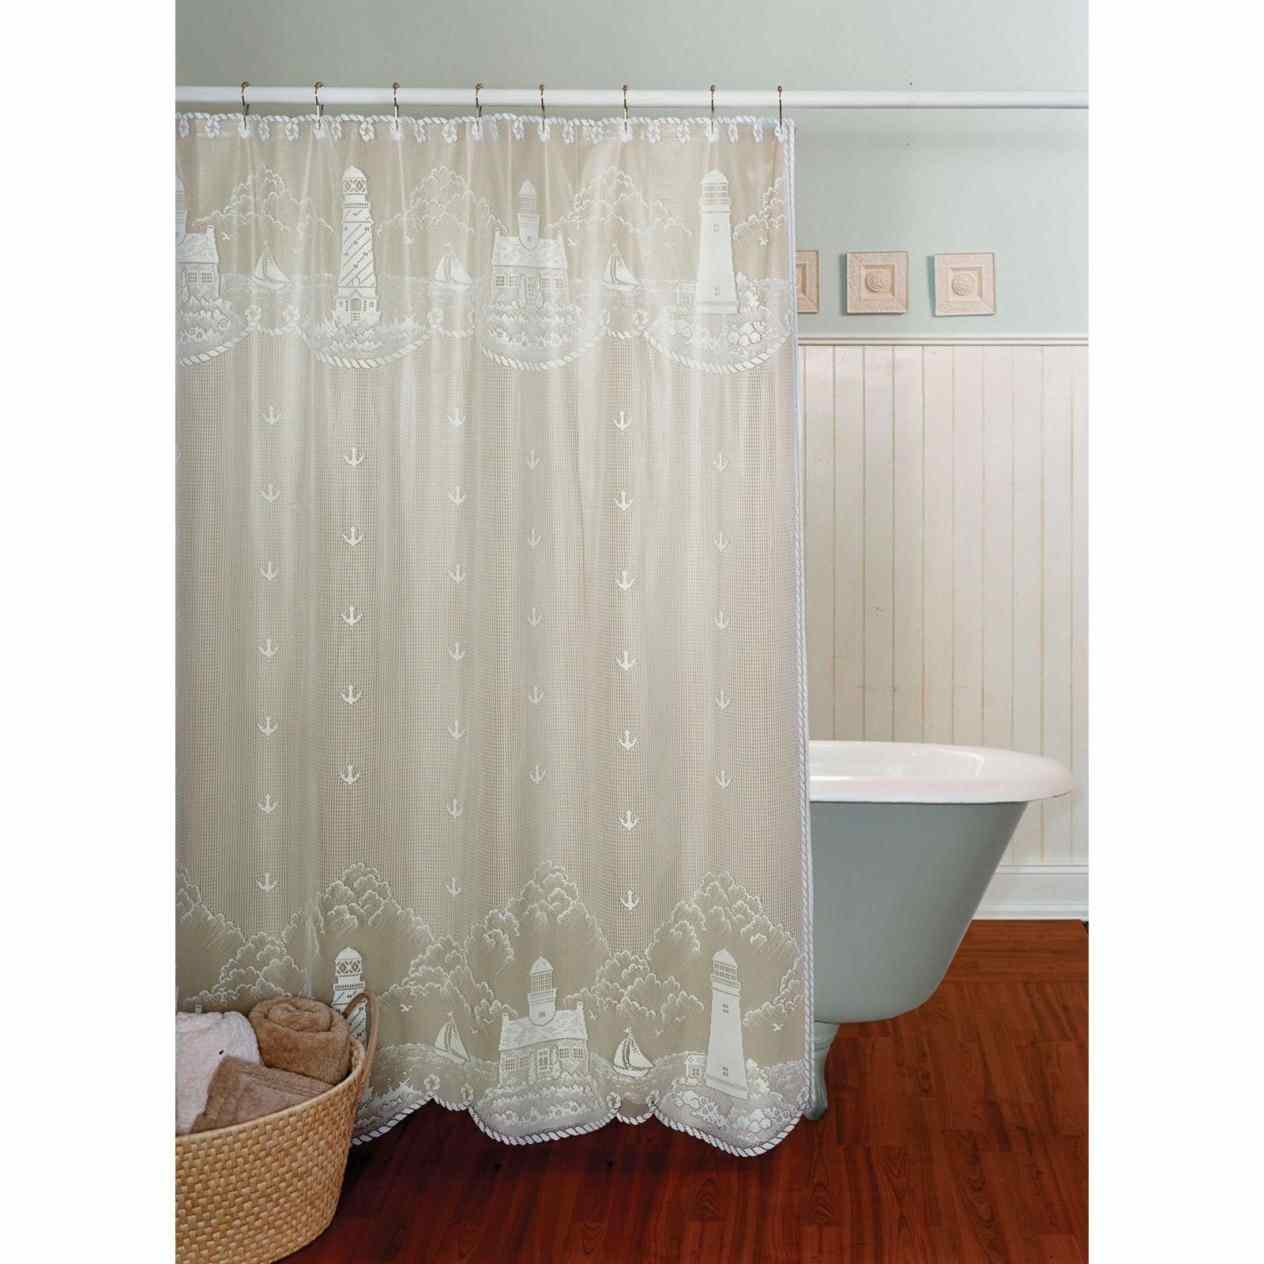 Curtains With Sound Best Interior Design Ideas Psycho Scary within sizing 1264 X 1264